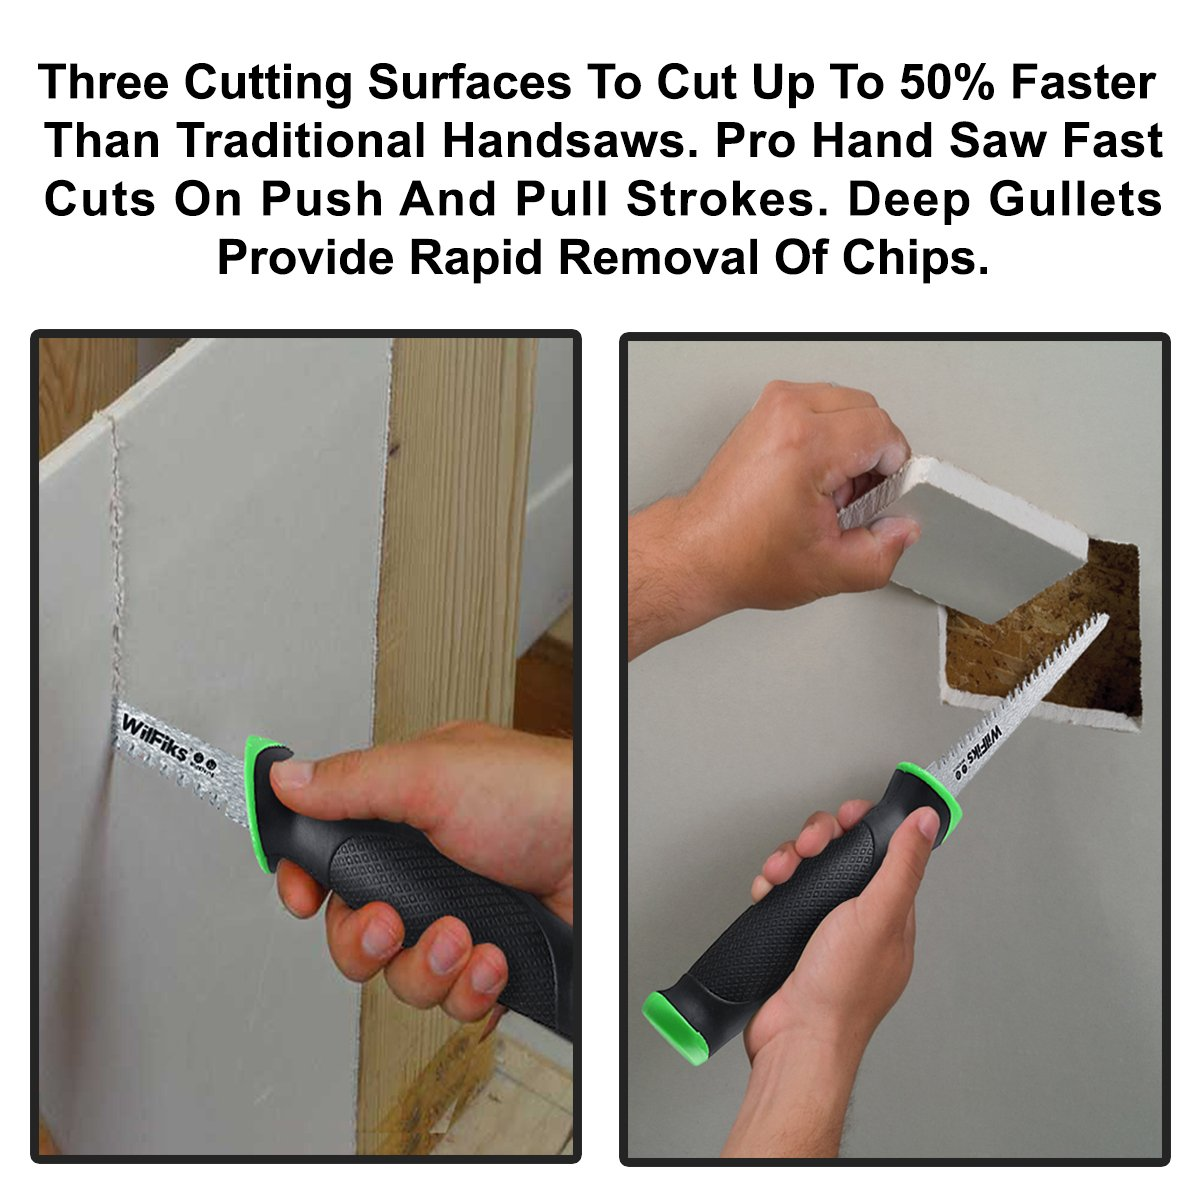 """WilFiks Razor Sharp 6.5"""" Pro Jab Saw, Drywall Hand Saw, Perfect For Sawing, Trimming, Gardening, Pruning & Cutting Wood, Wallboards & More, Comfortable Ergonomic Non-Slip Handle, Has A Sharpened Tip by WilFiks (Image #6)"""